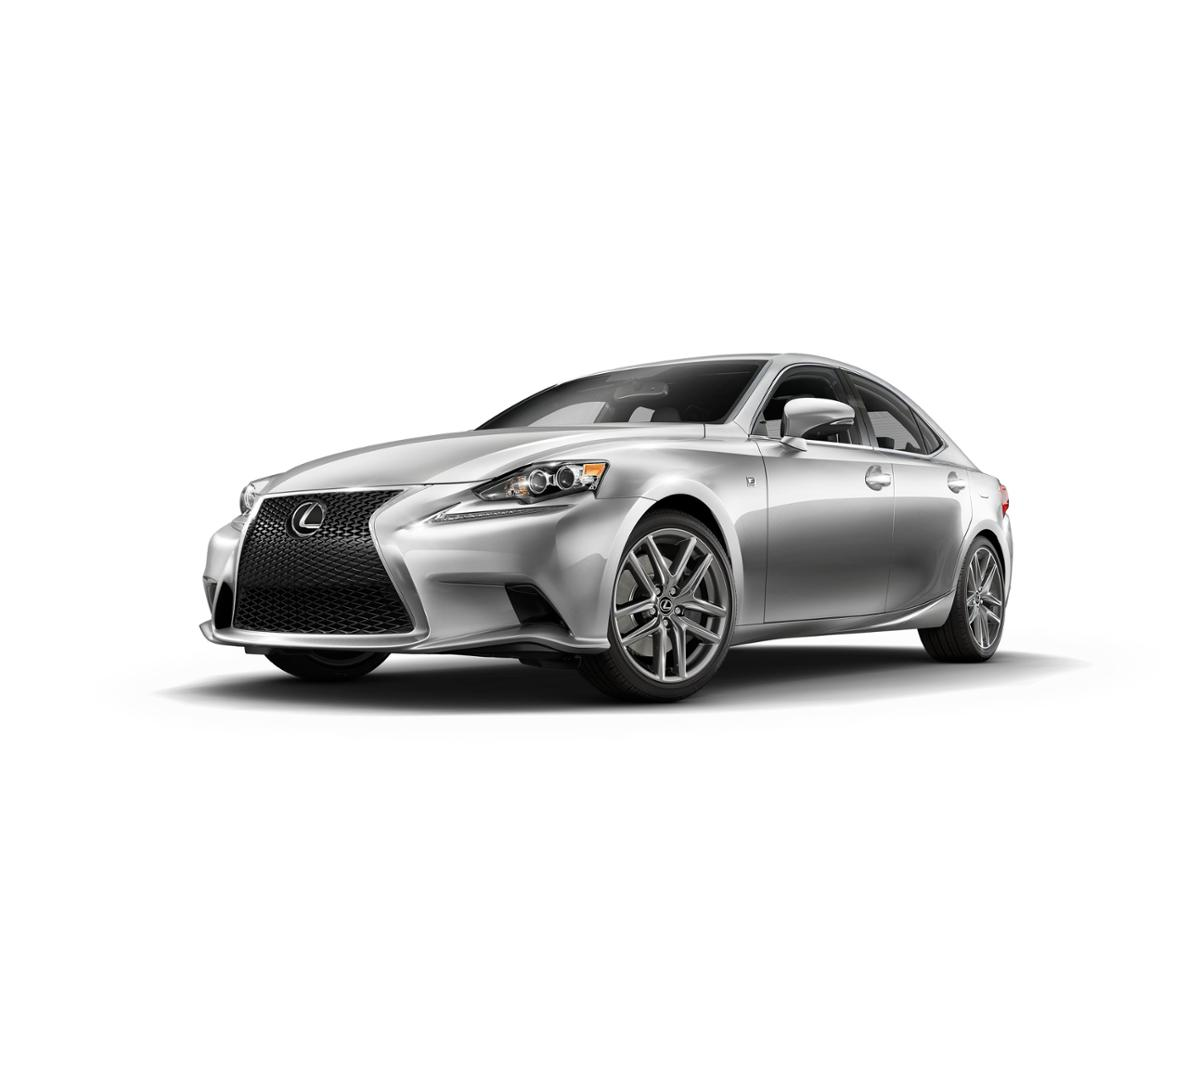 Used Lexus Is350: See This 2016 Lexus IS 350 At Lexus Of Smithtown